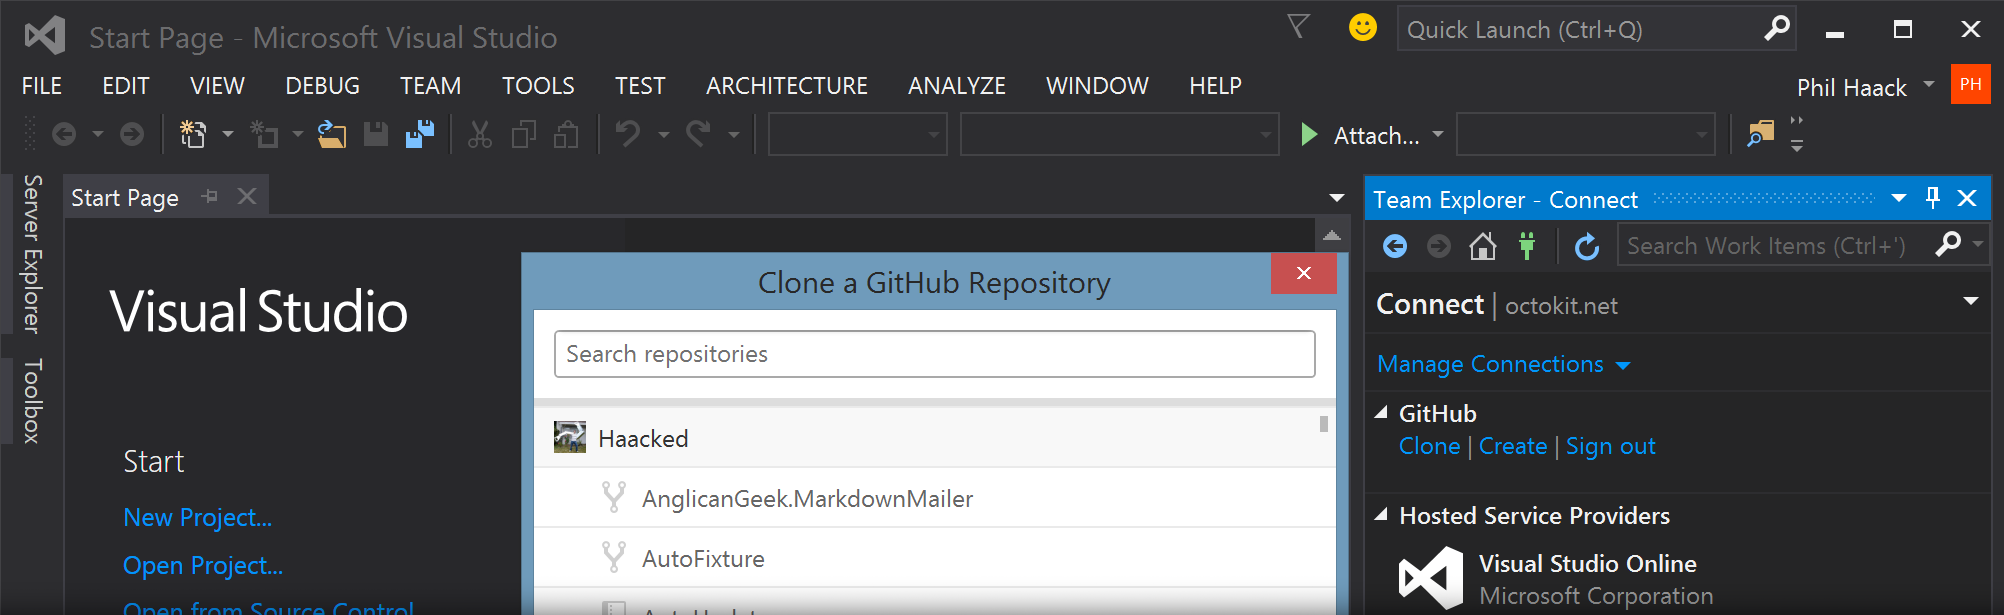 """Clone a GitHub Repository"" dialog in Visual Studio"